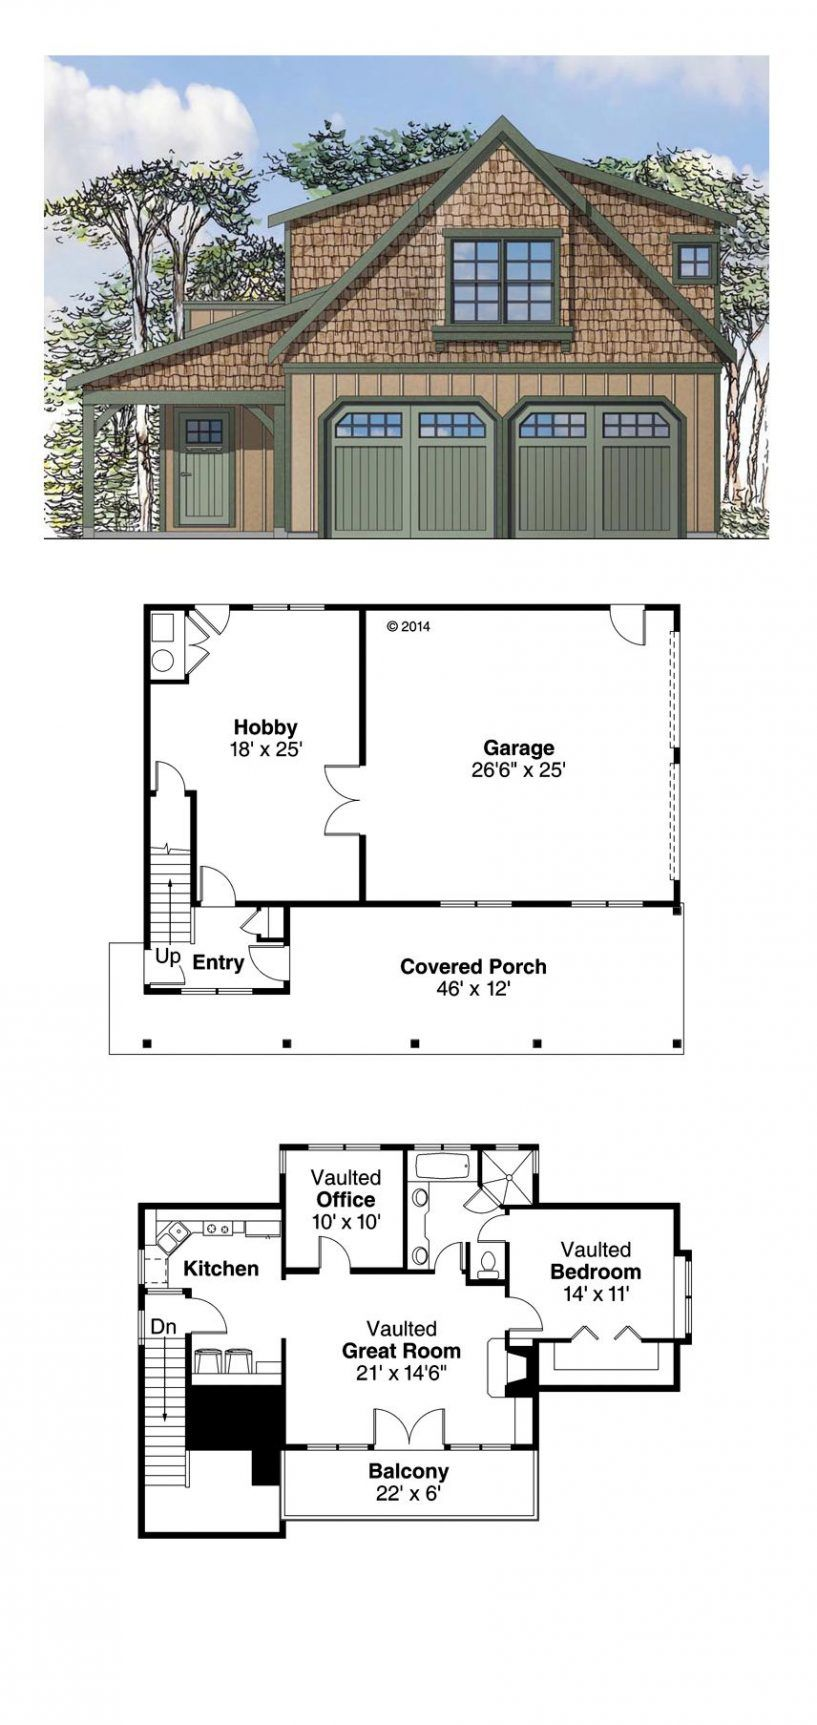 2 Bedroom Apartment Above Garage Plans 4 car garage house